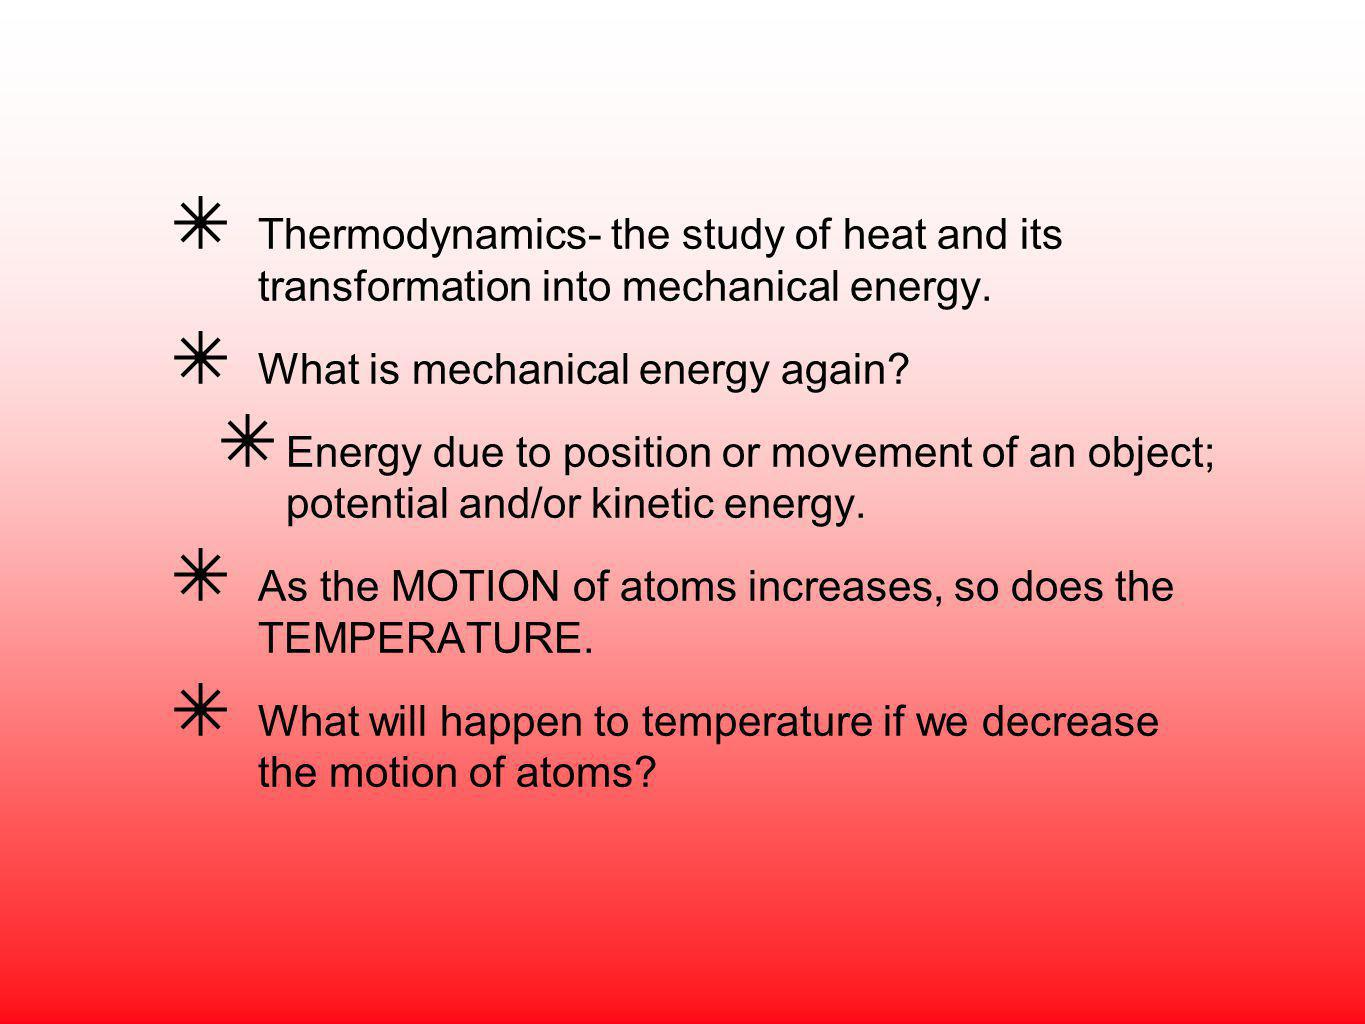 Thermodynamics- the study of heat and its transformation into mechanical energy.